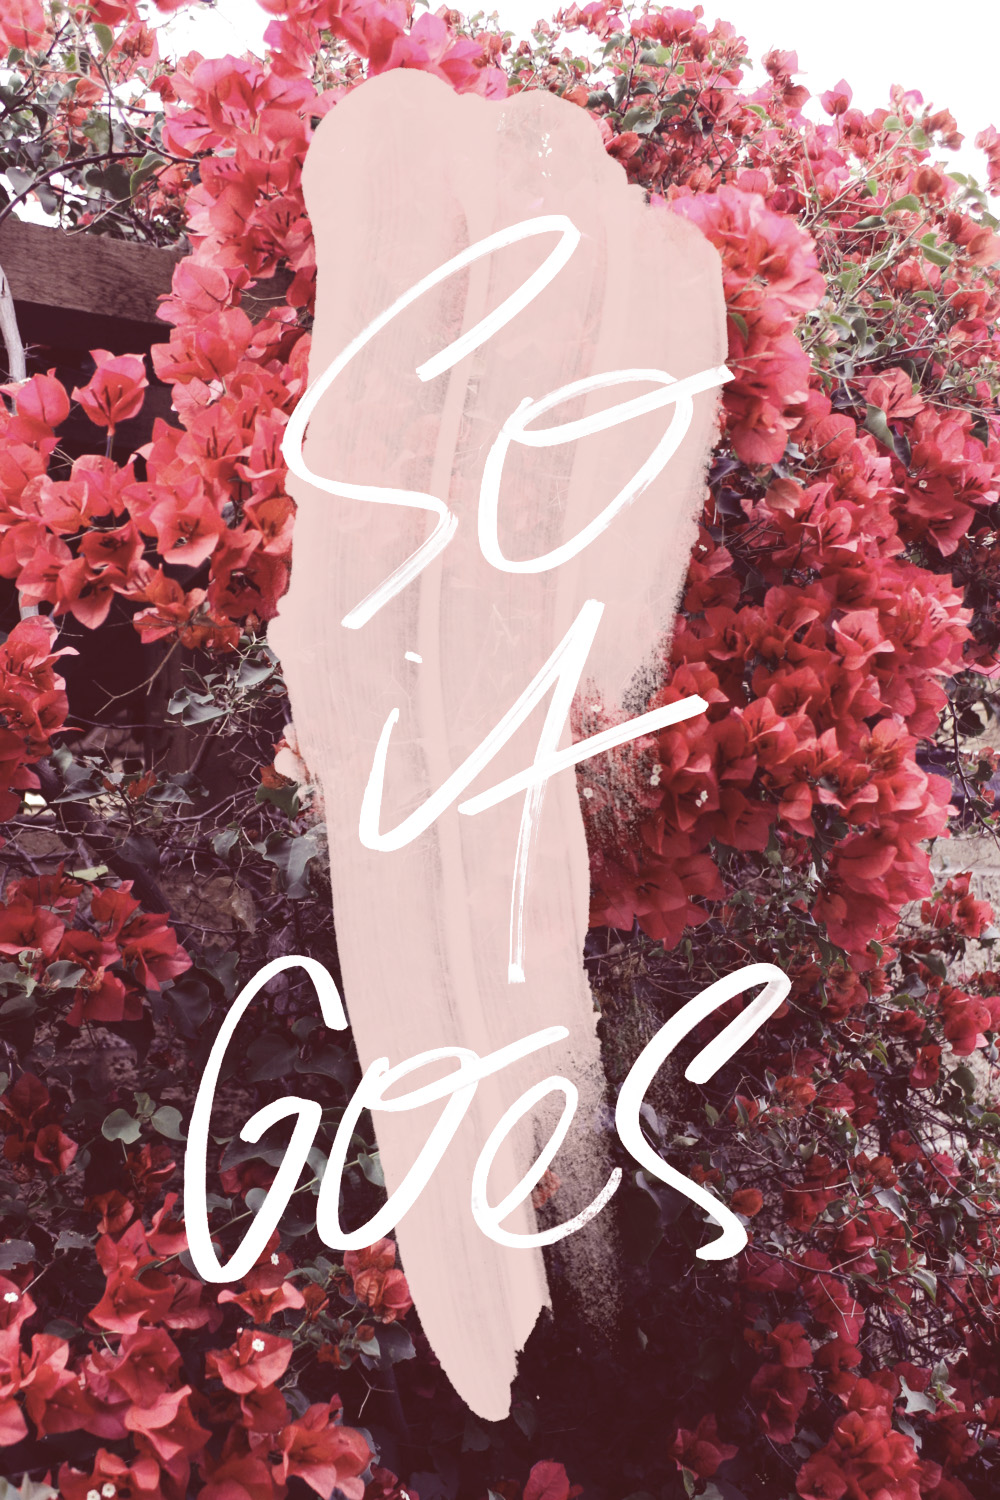 So it goes | Reux Design Co.